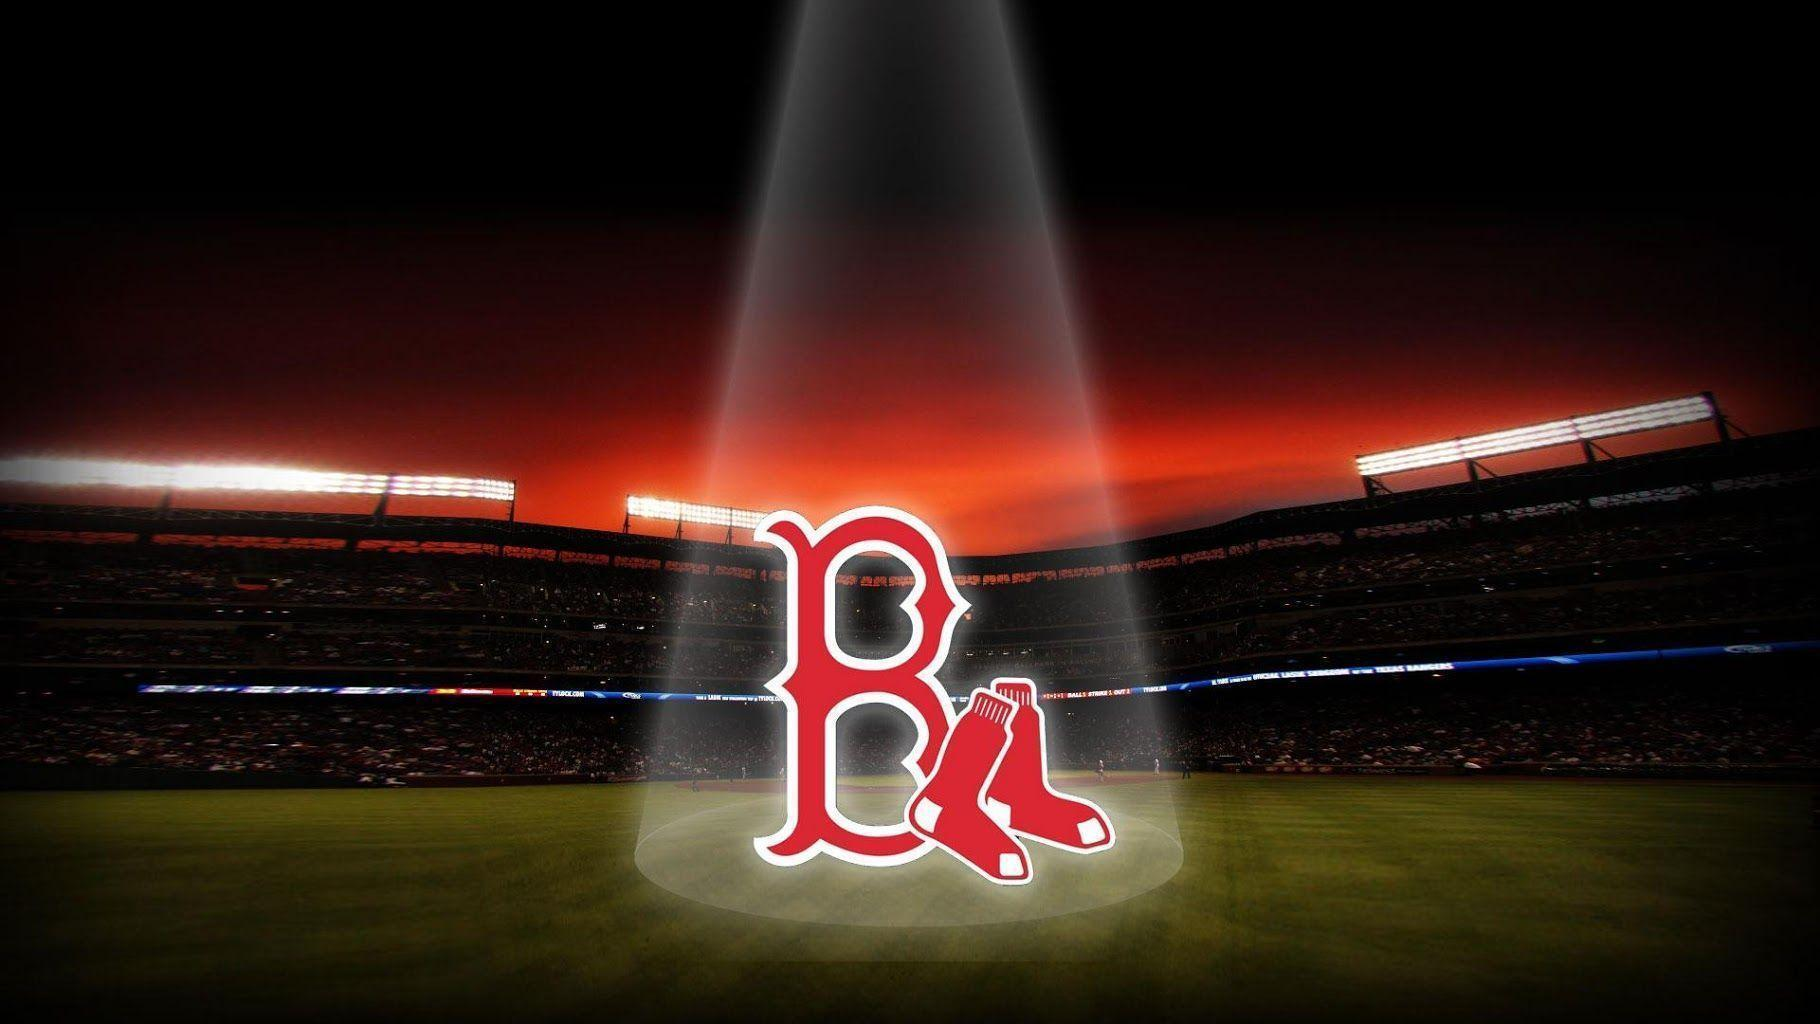 Red Sox HD Desktop Wallpapers